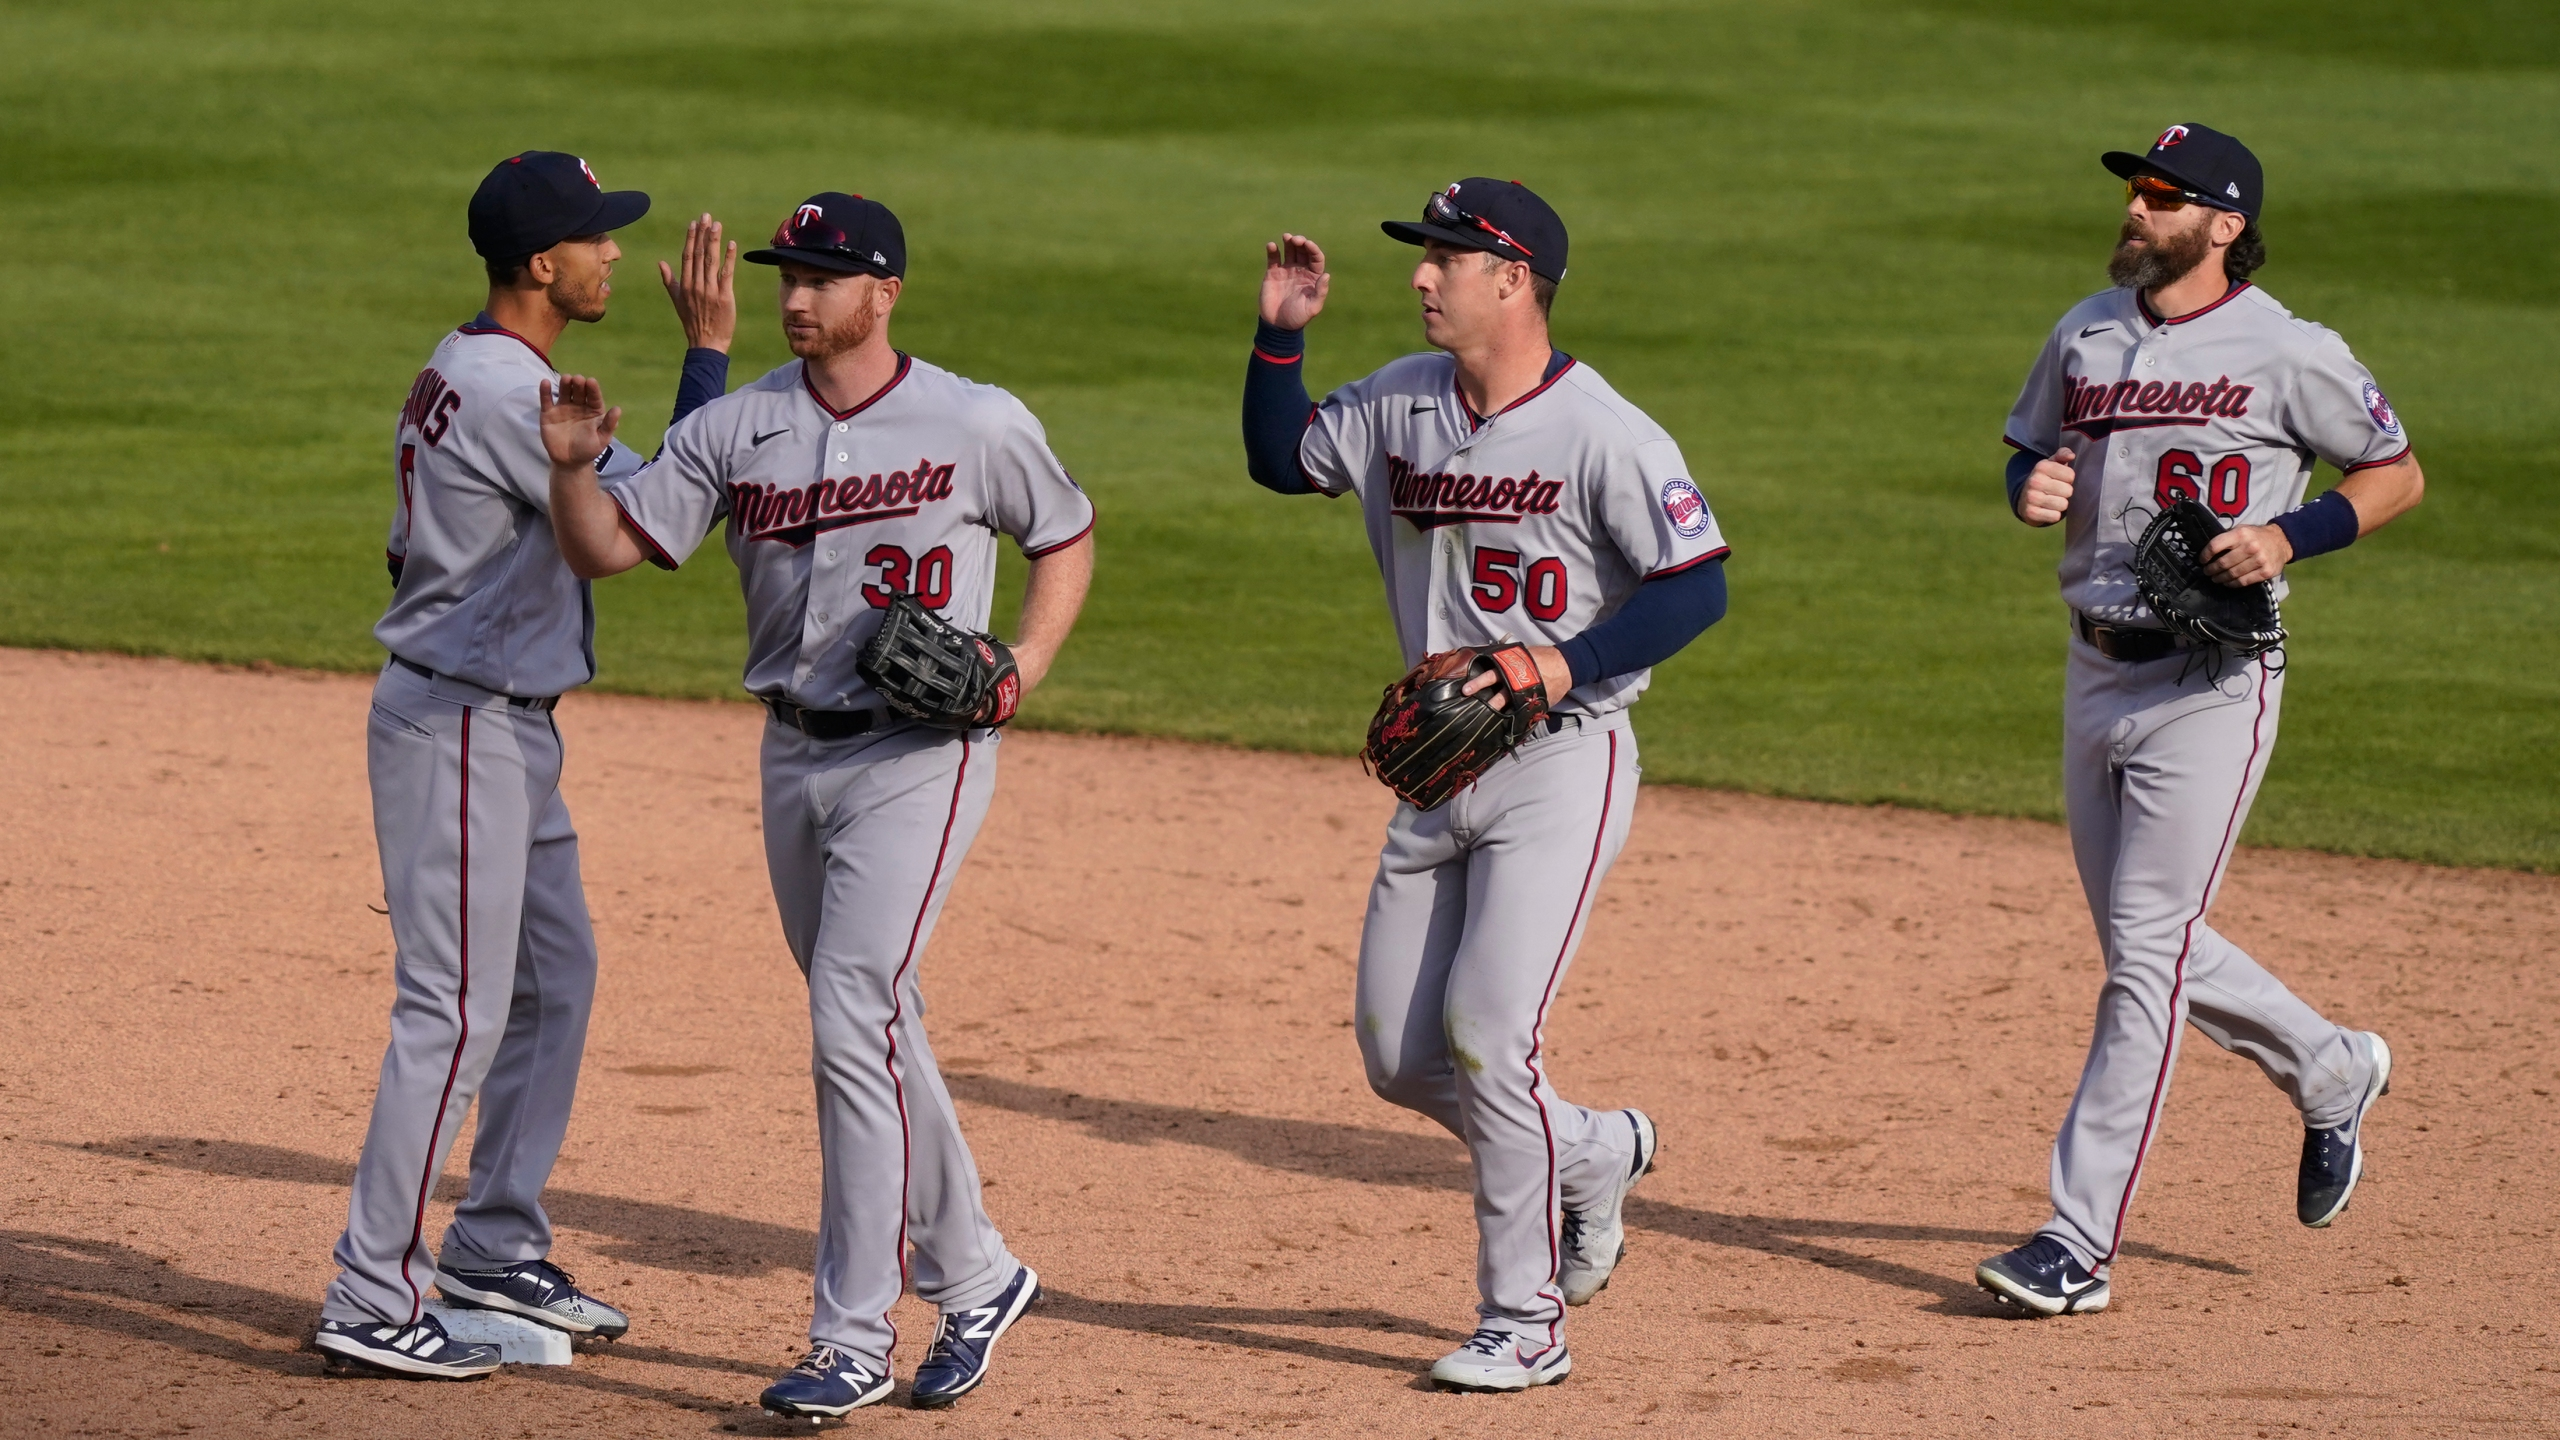 Andrelton Simmons, Kyle Garlick, Brent Rooker, Jake Cave